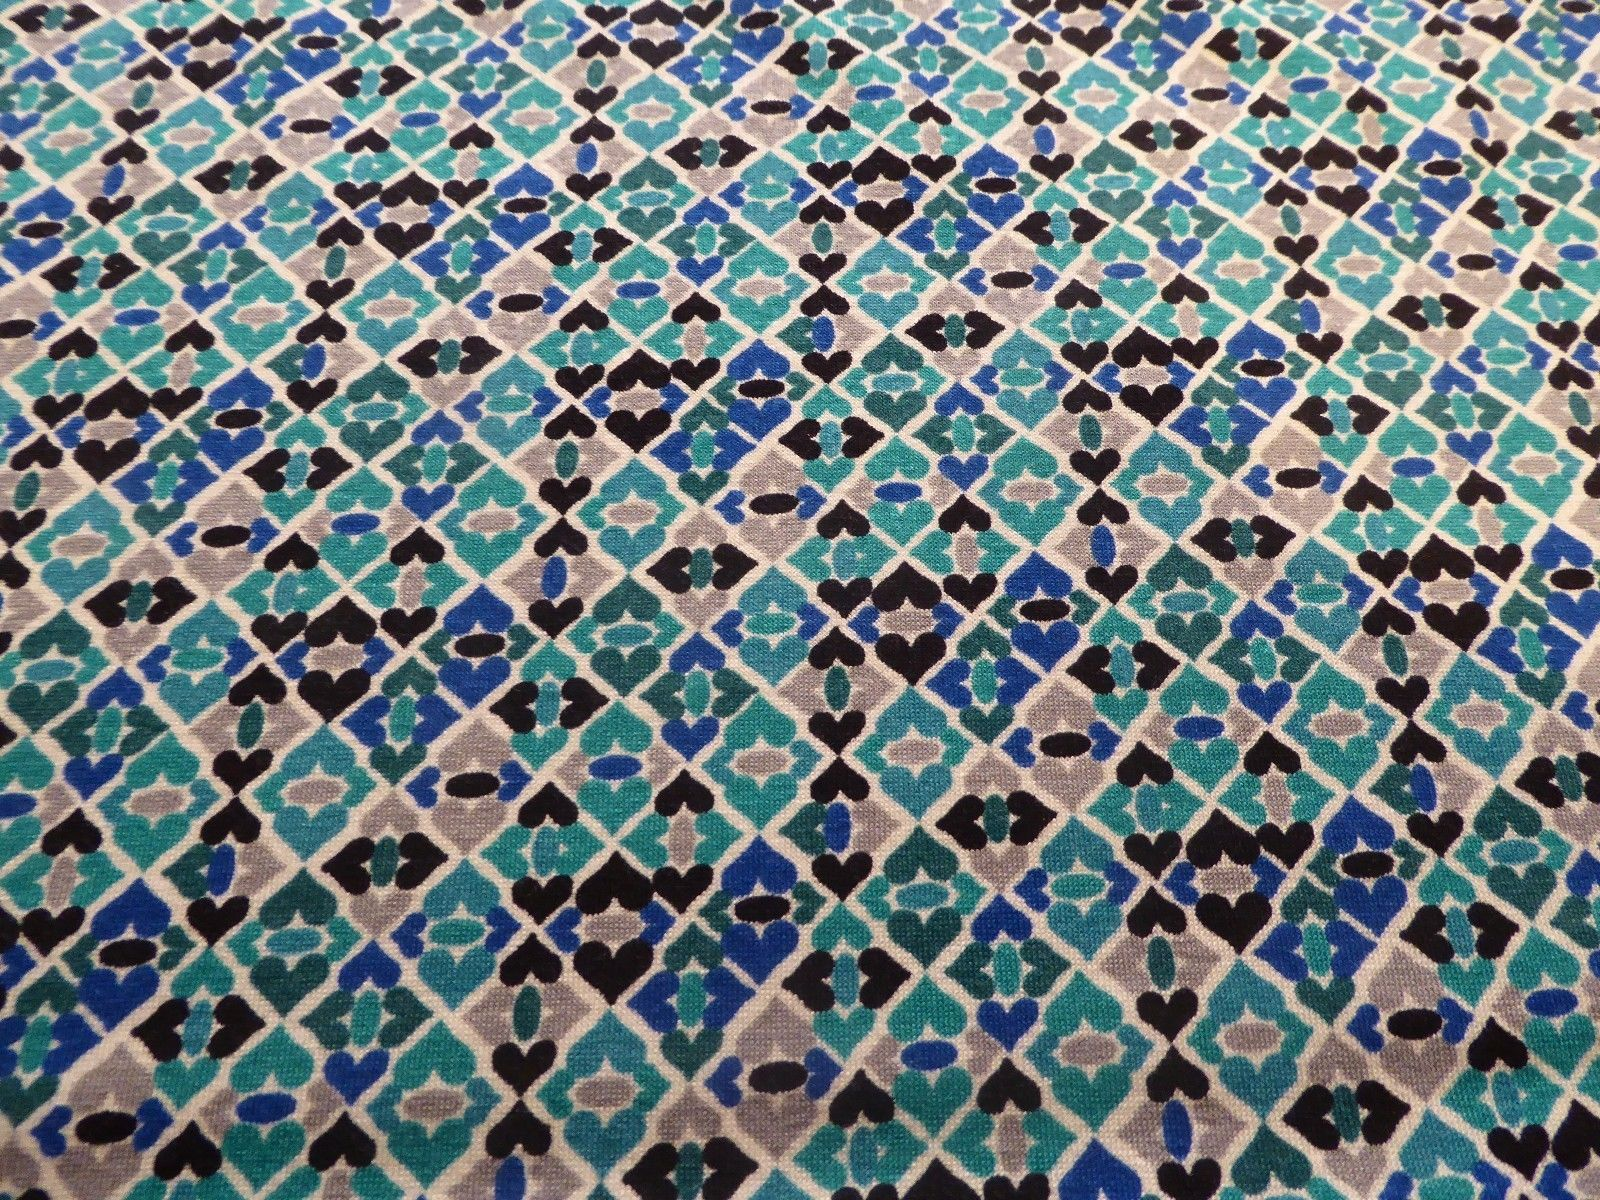 Blue and Green Moroccan Tile Geometric Abstract Viscose Knit from ...